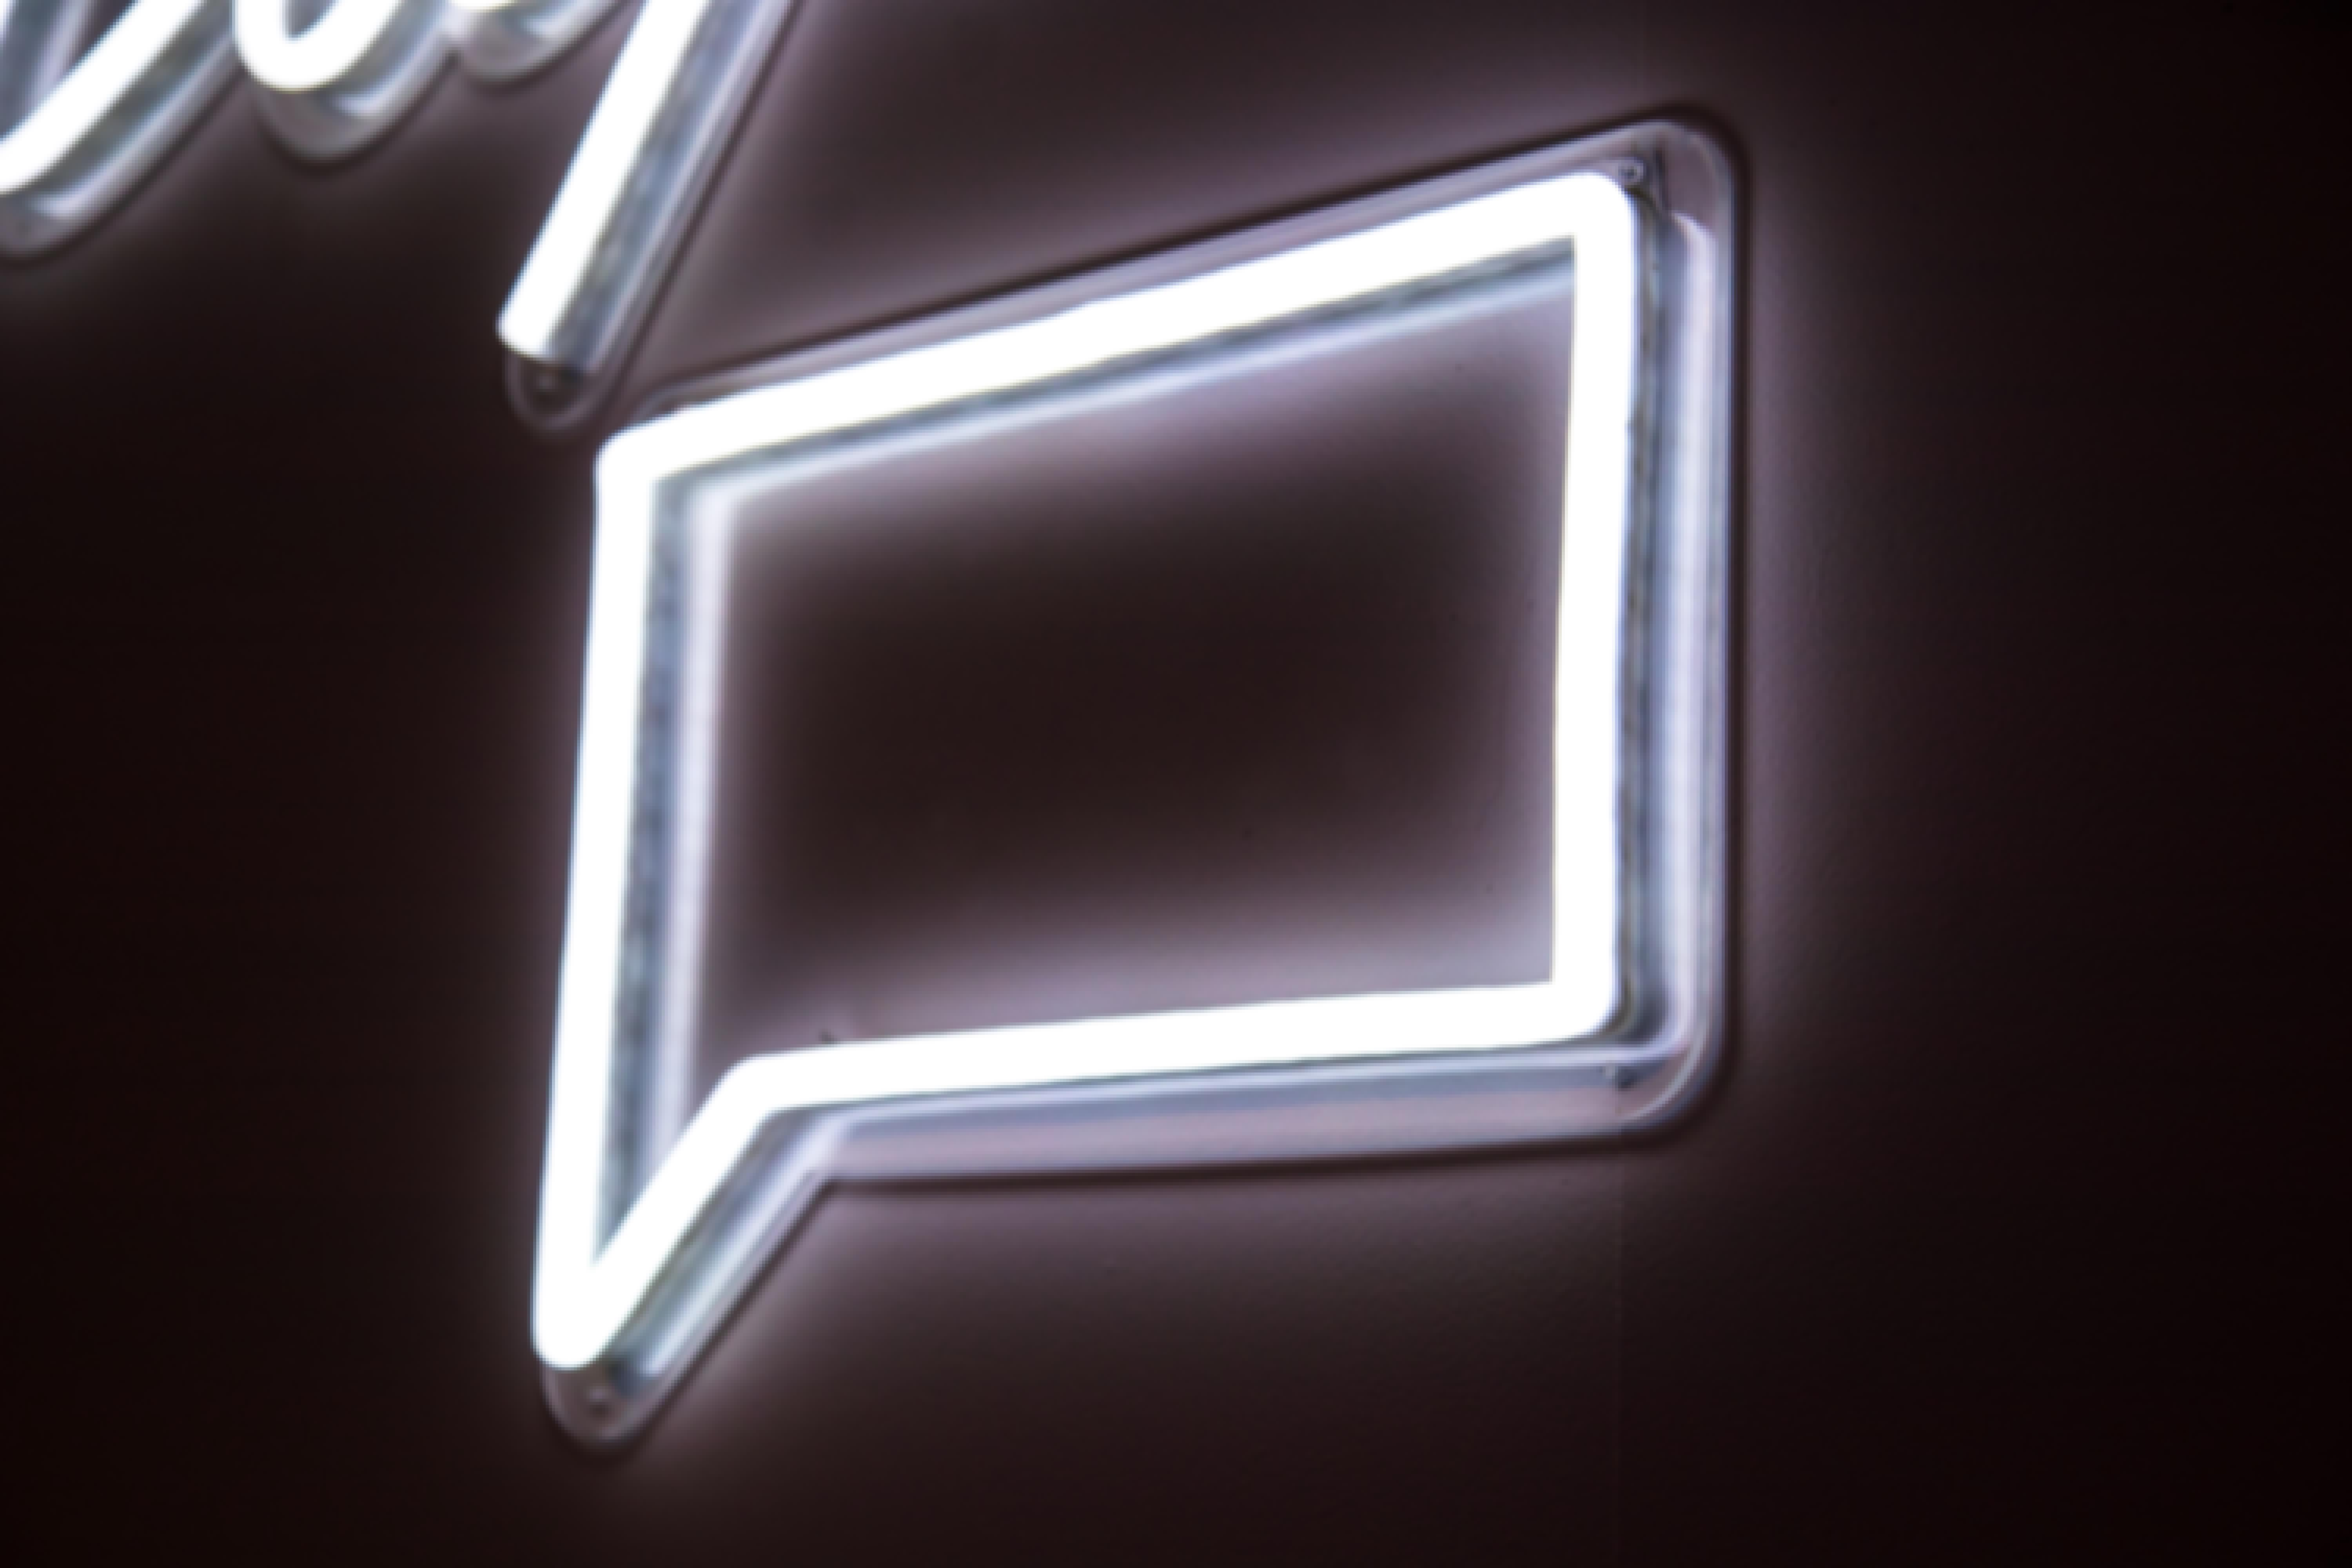 A neon review sign